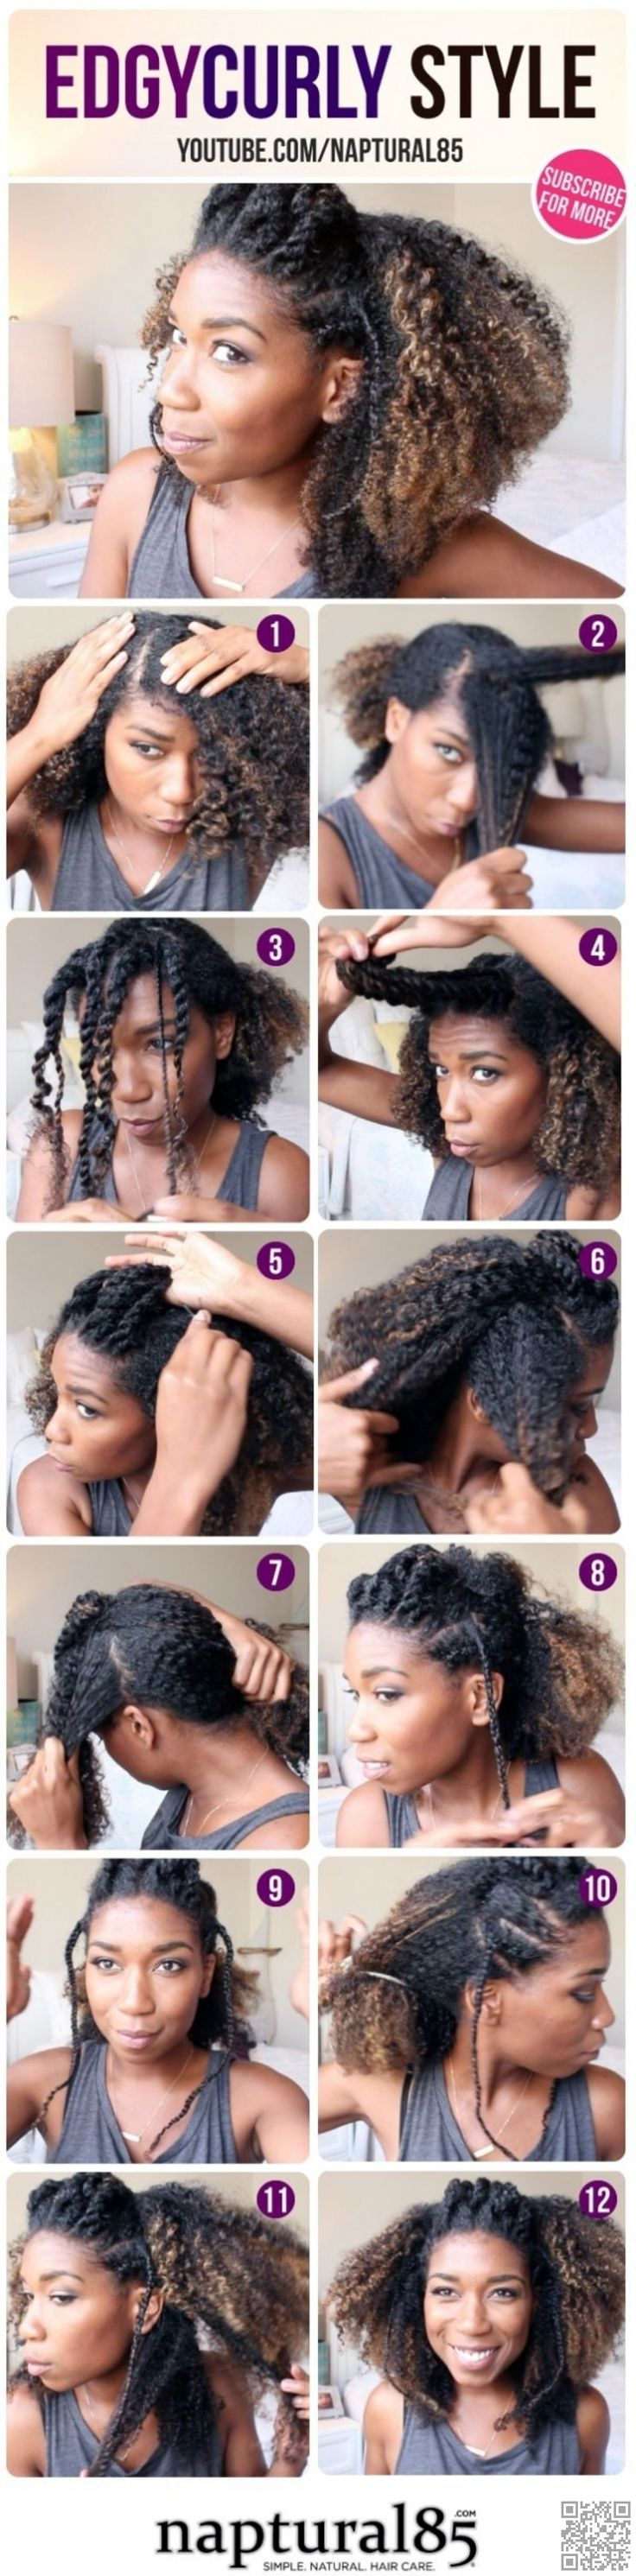 10 best Workout Hairstyles images on Pinterest